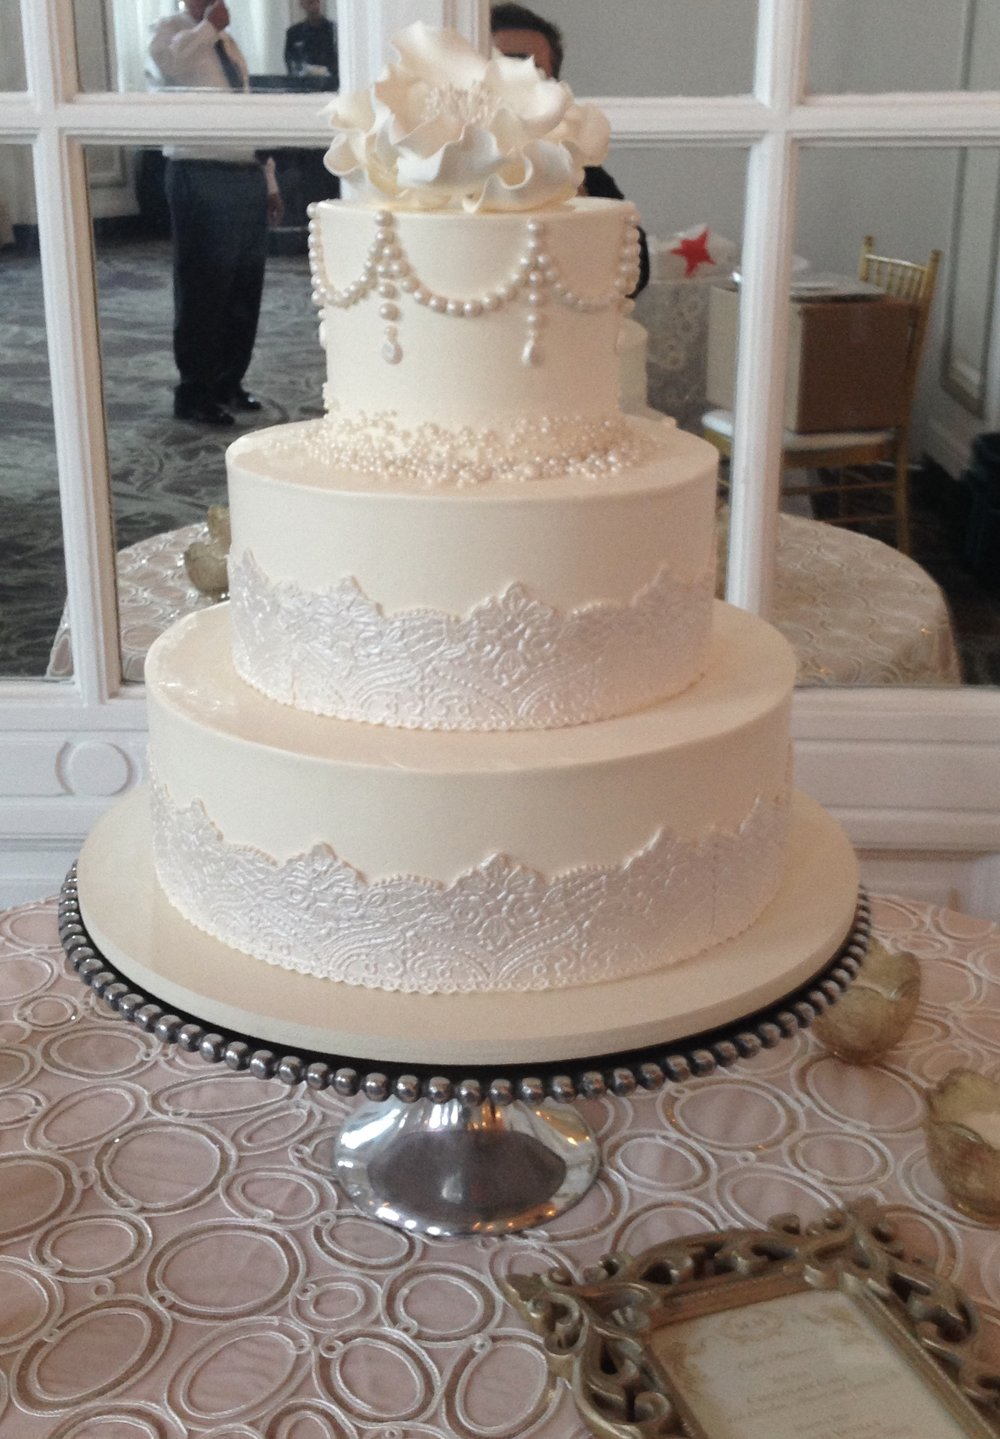 wedding cake - Lace and pearls.jpg